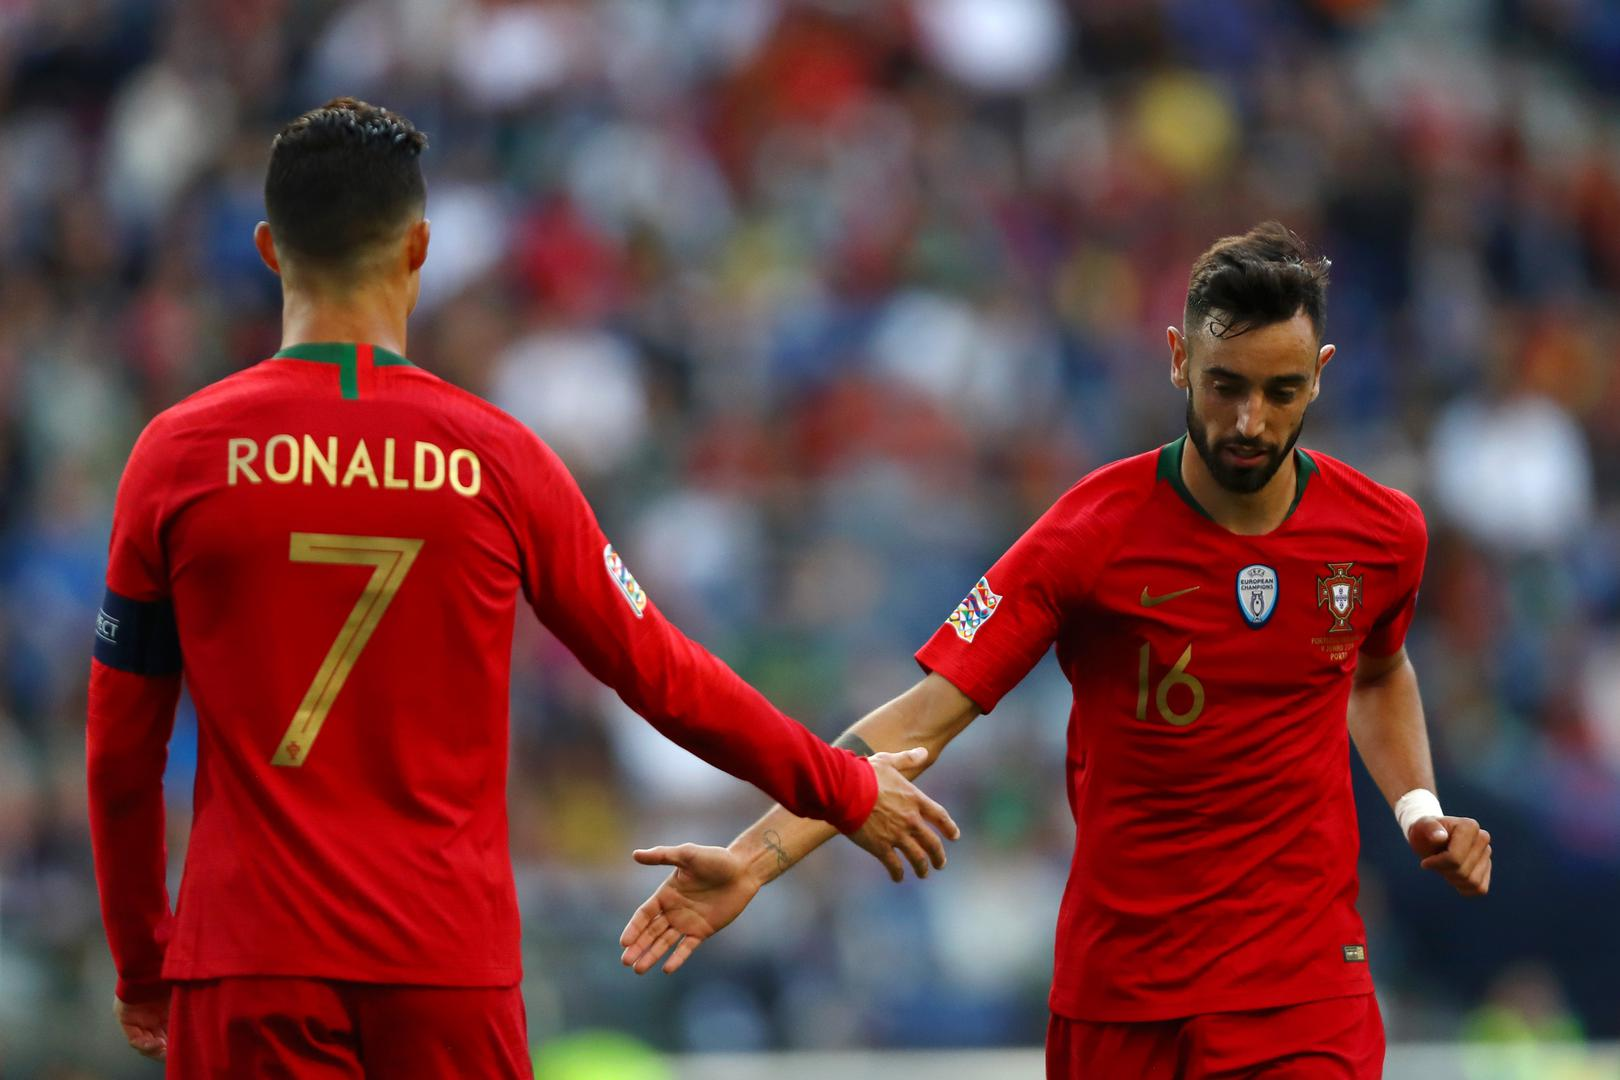 Cristiano Ronaldo and Bruno Fernandes